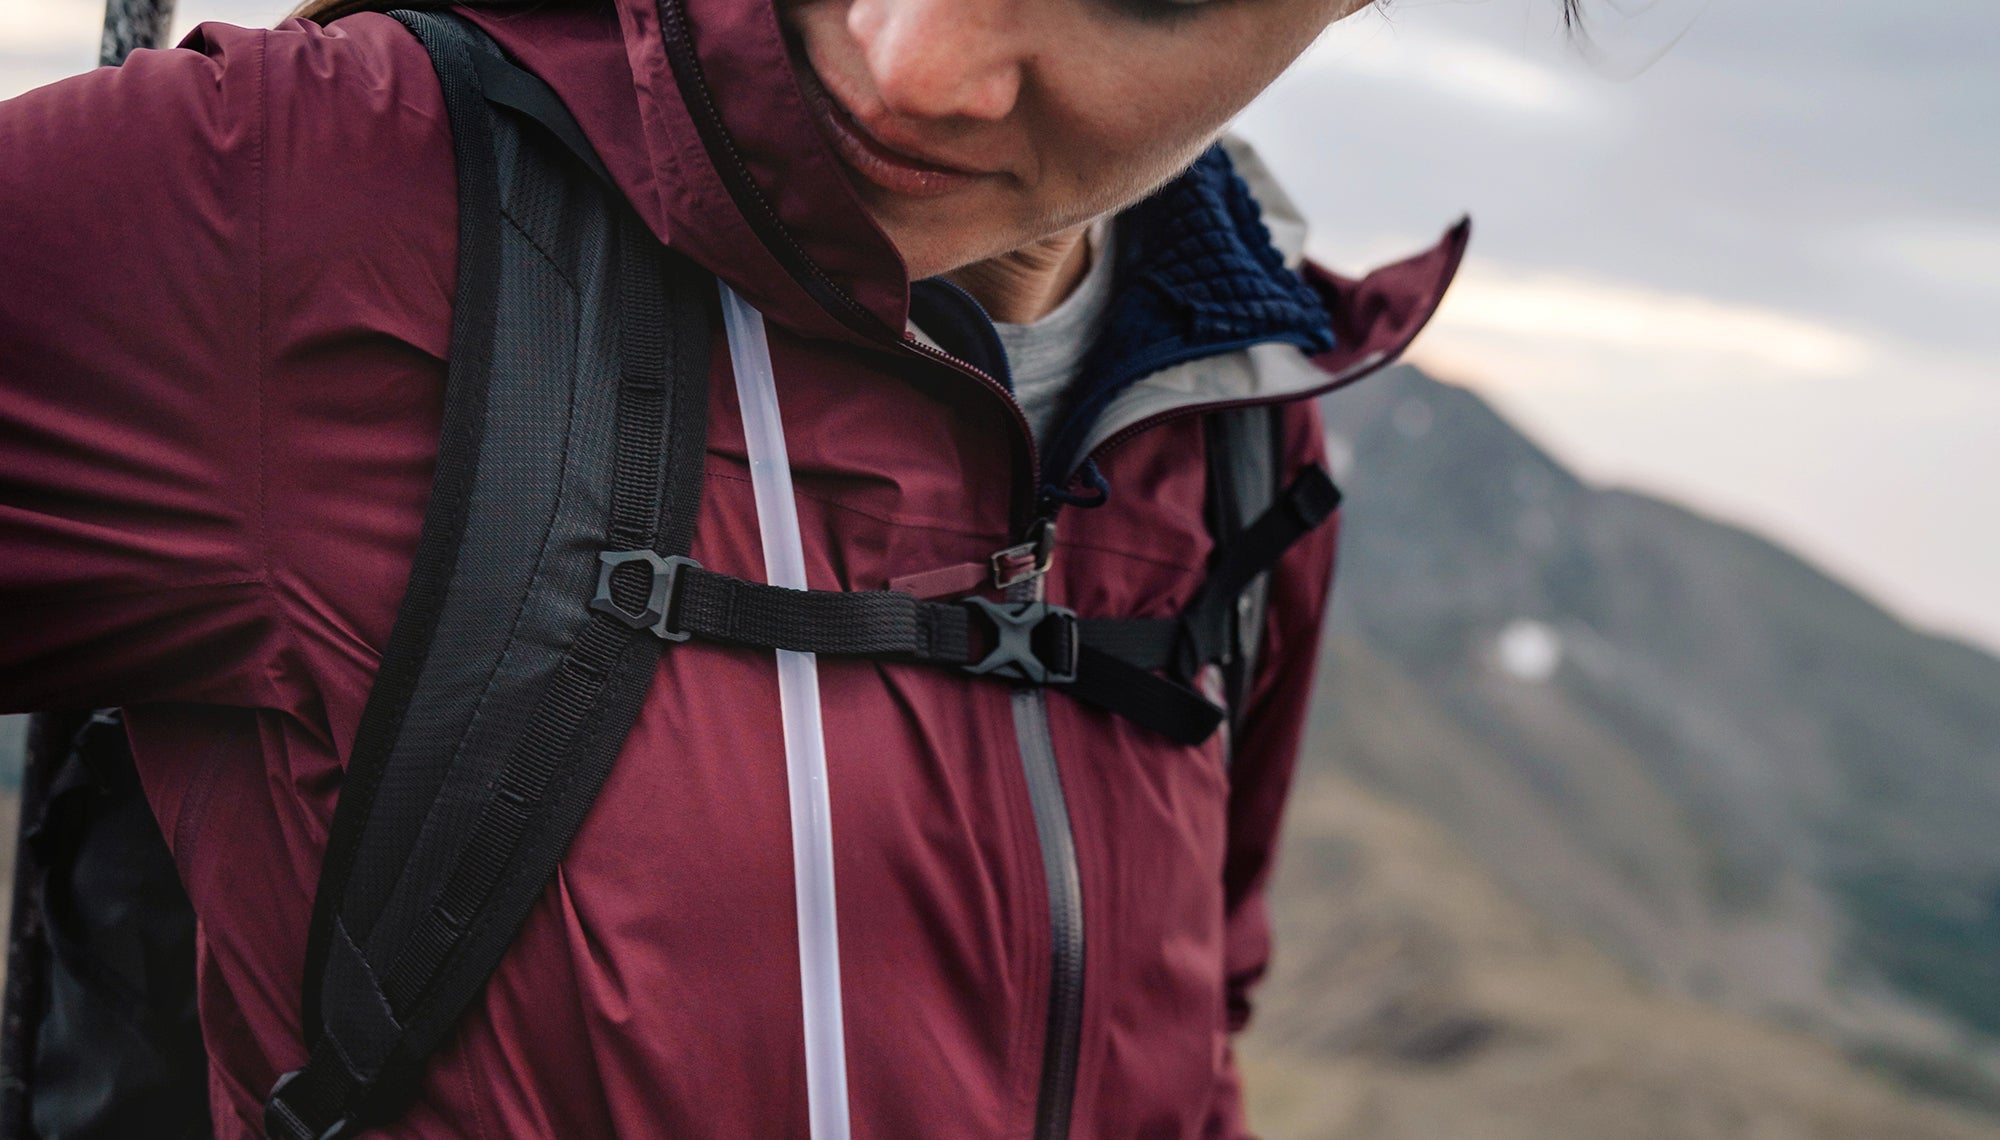 Woman in headlamp looking at backpack straps